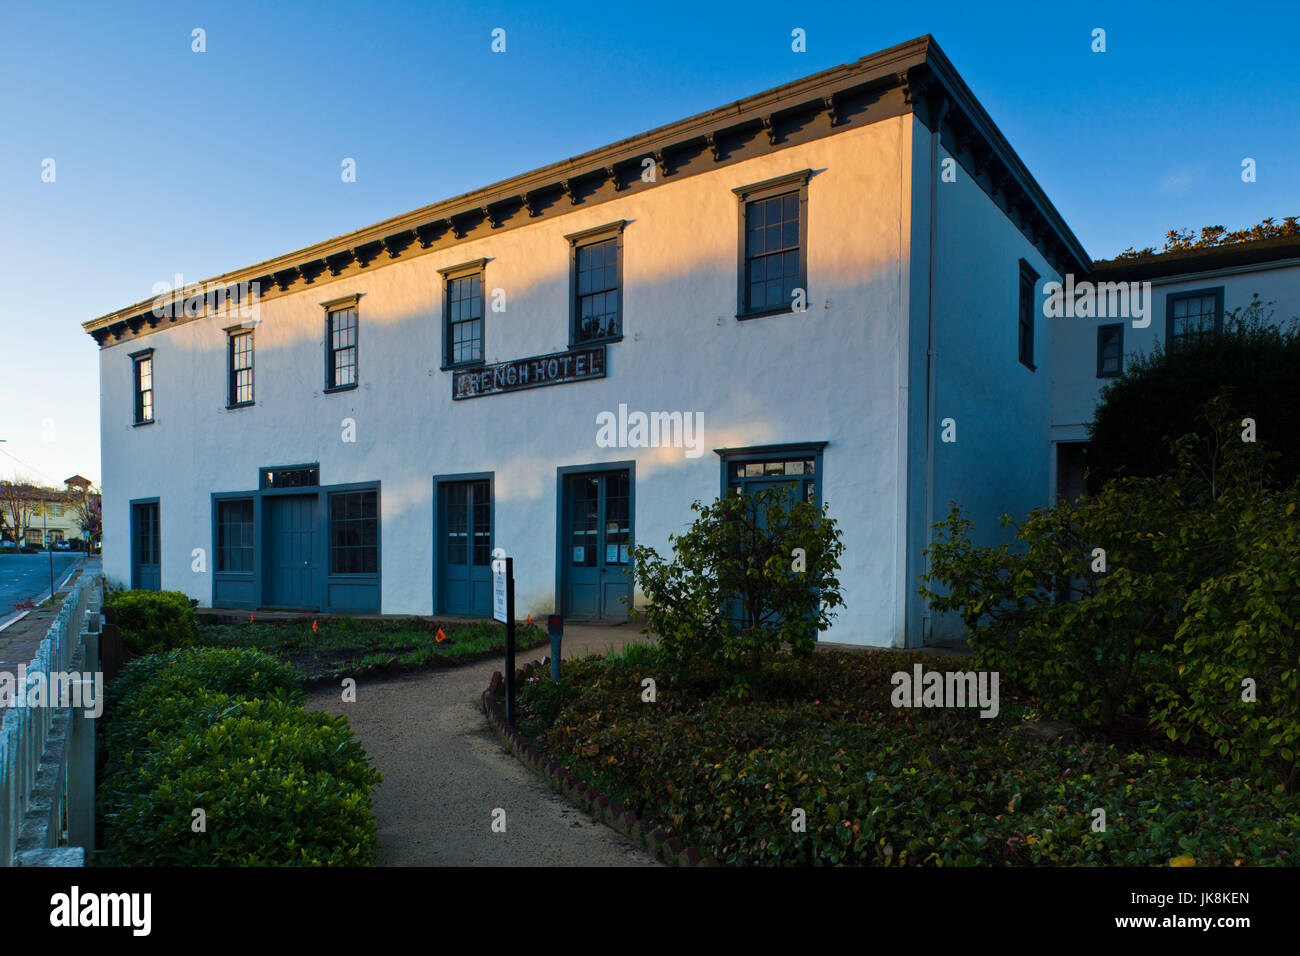 USA, California, Central Coast, Monterey, Stevenson House, formerly the French Hotel, building where Robert Louis - Stock Image